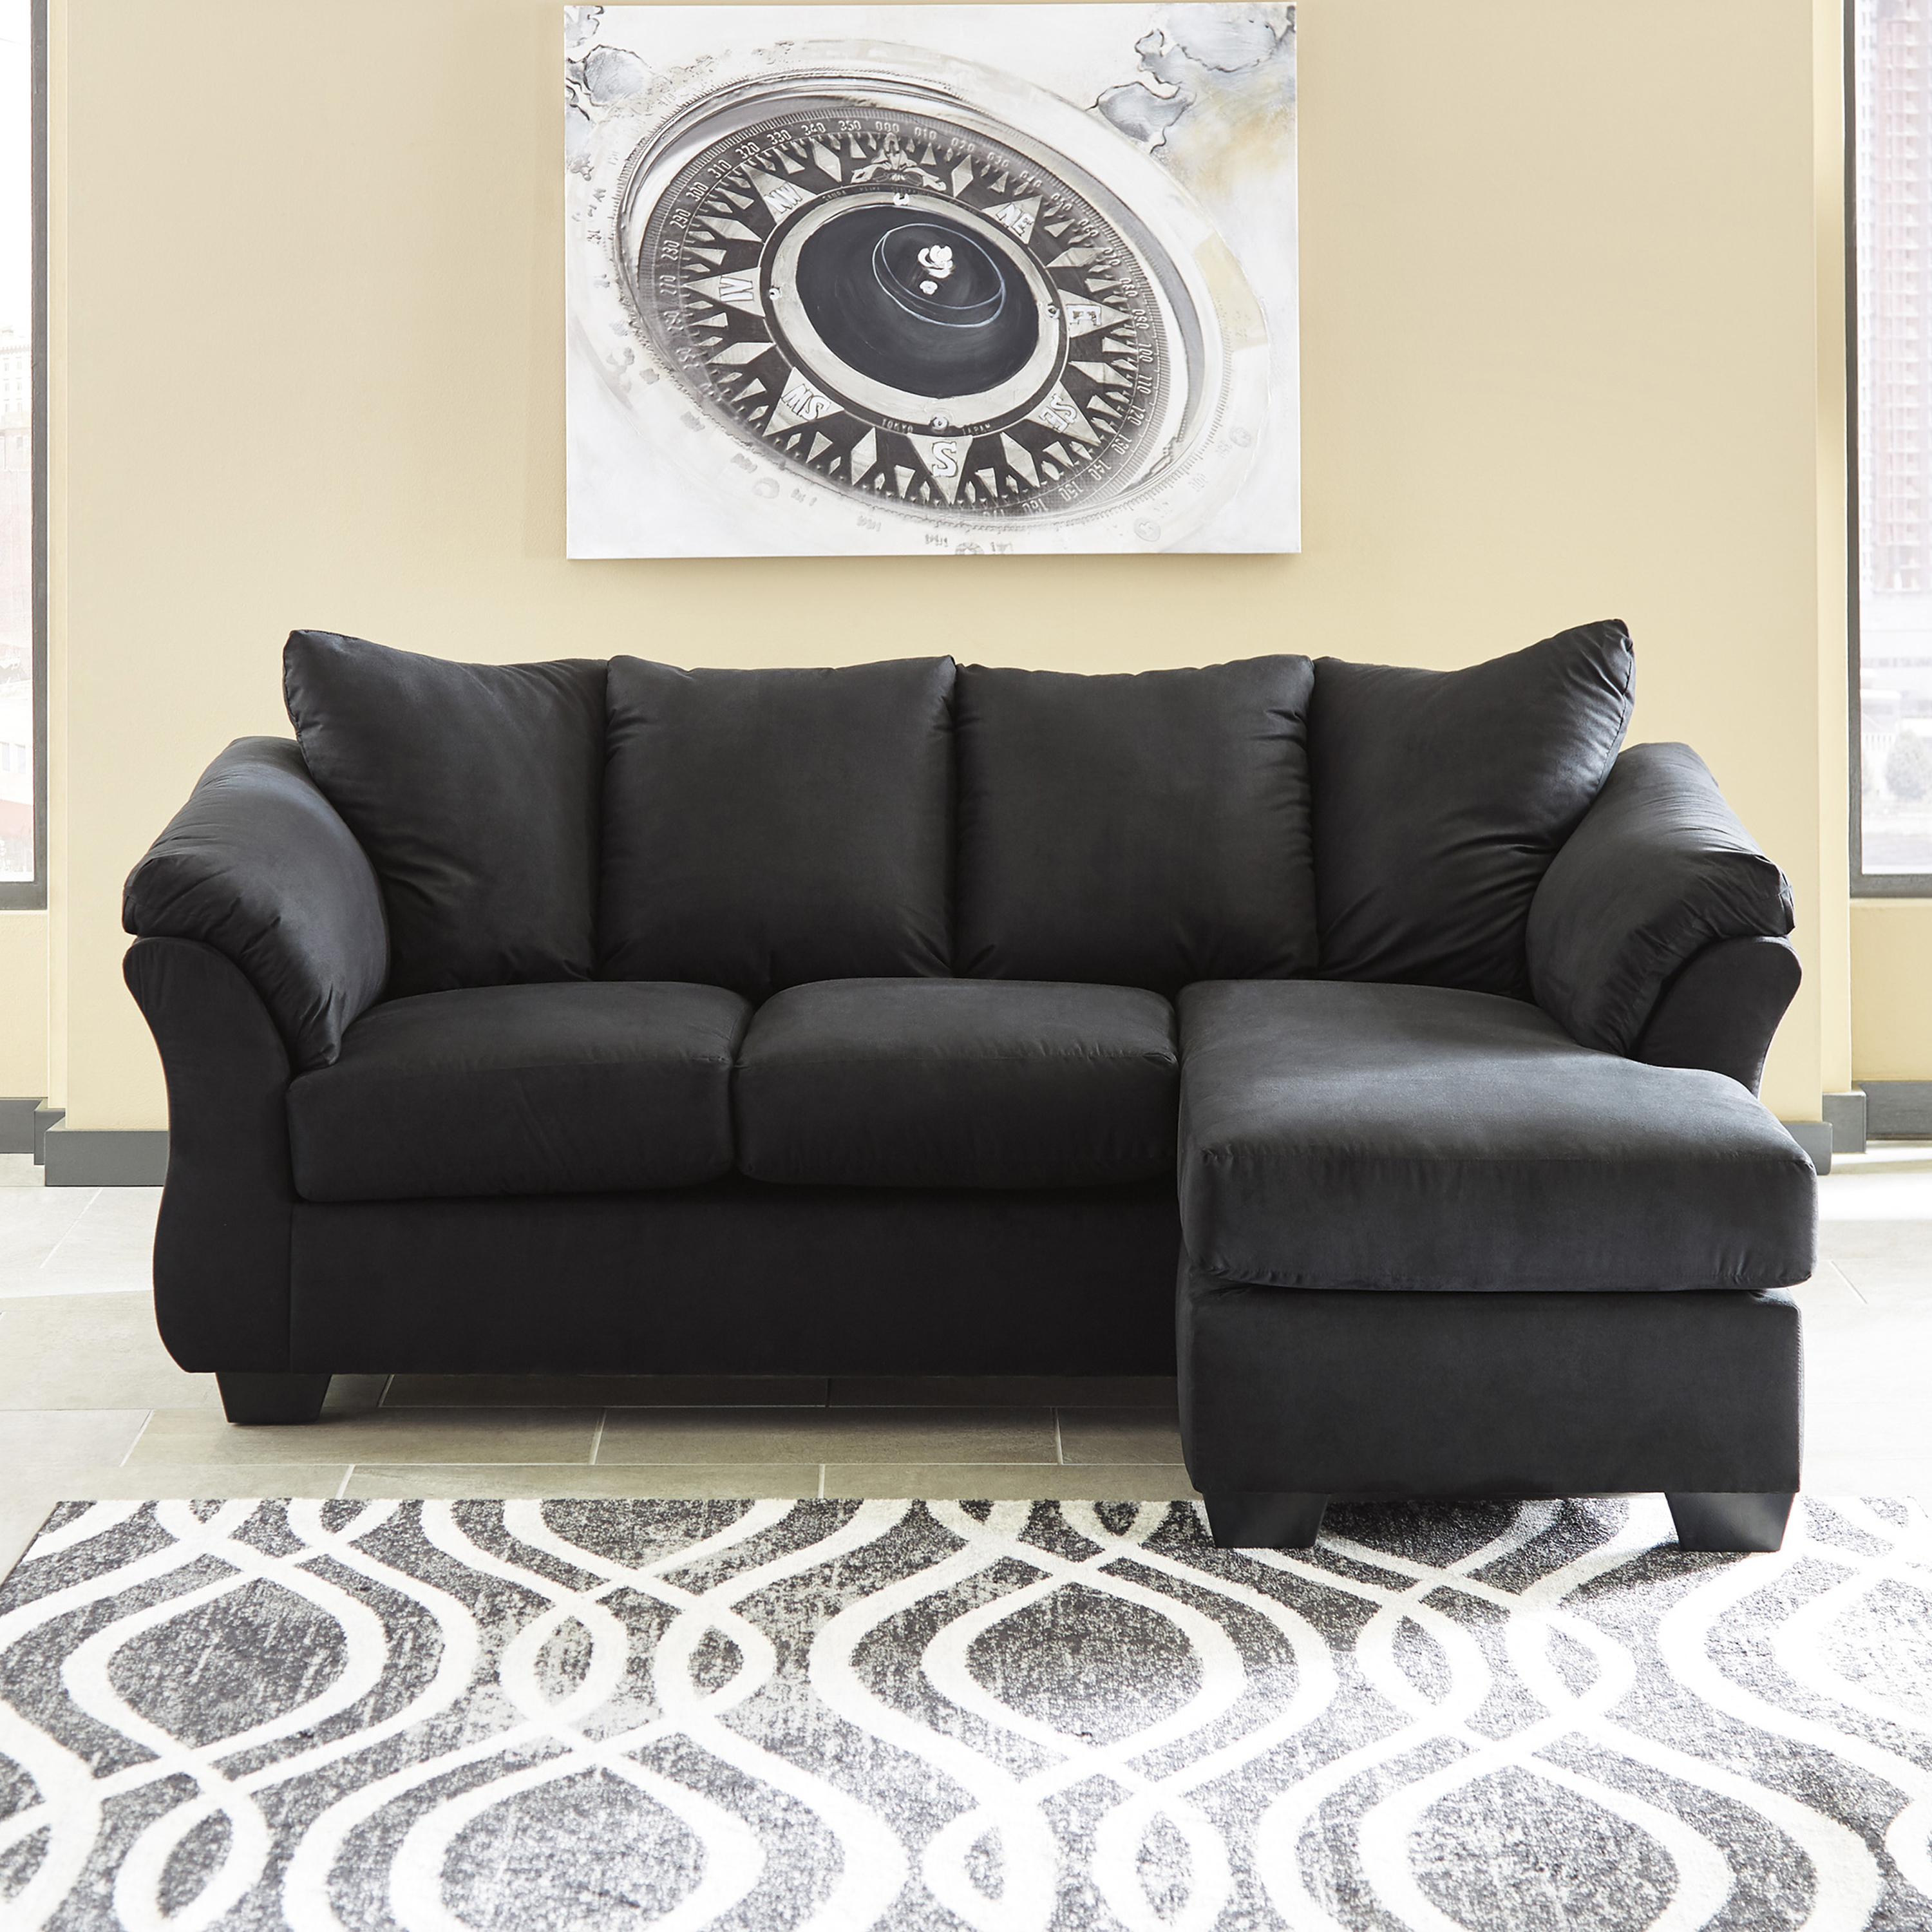 Flash Furniture Signature Design by Ashley Darcy Sofa Chaise in Mocha Microfiber